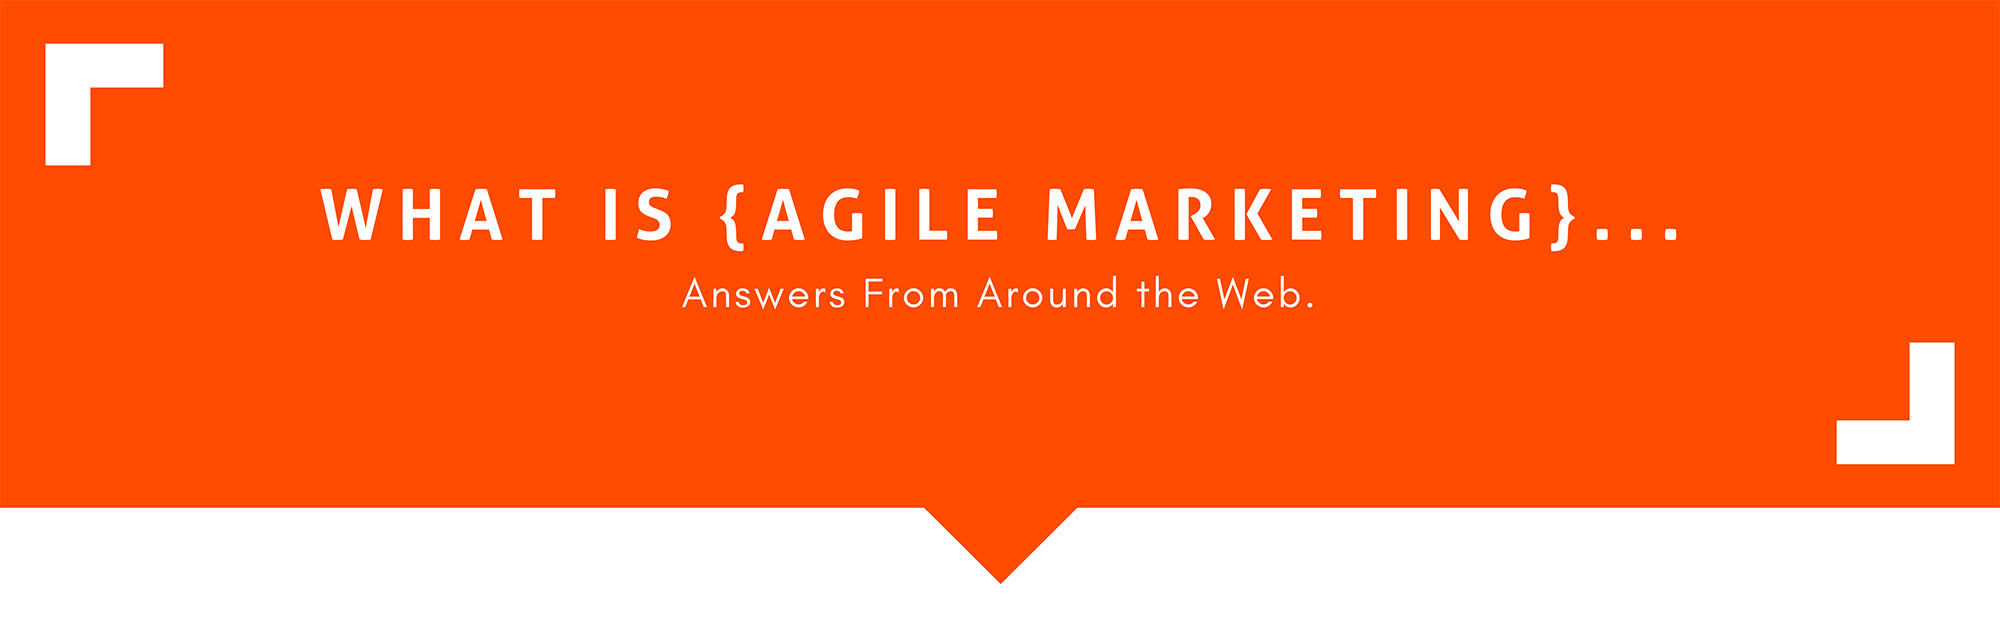 What is Agile Marketing